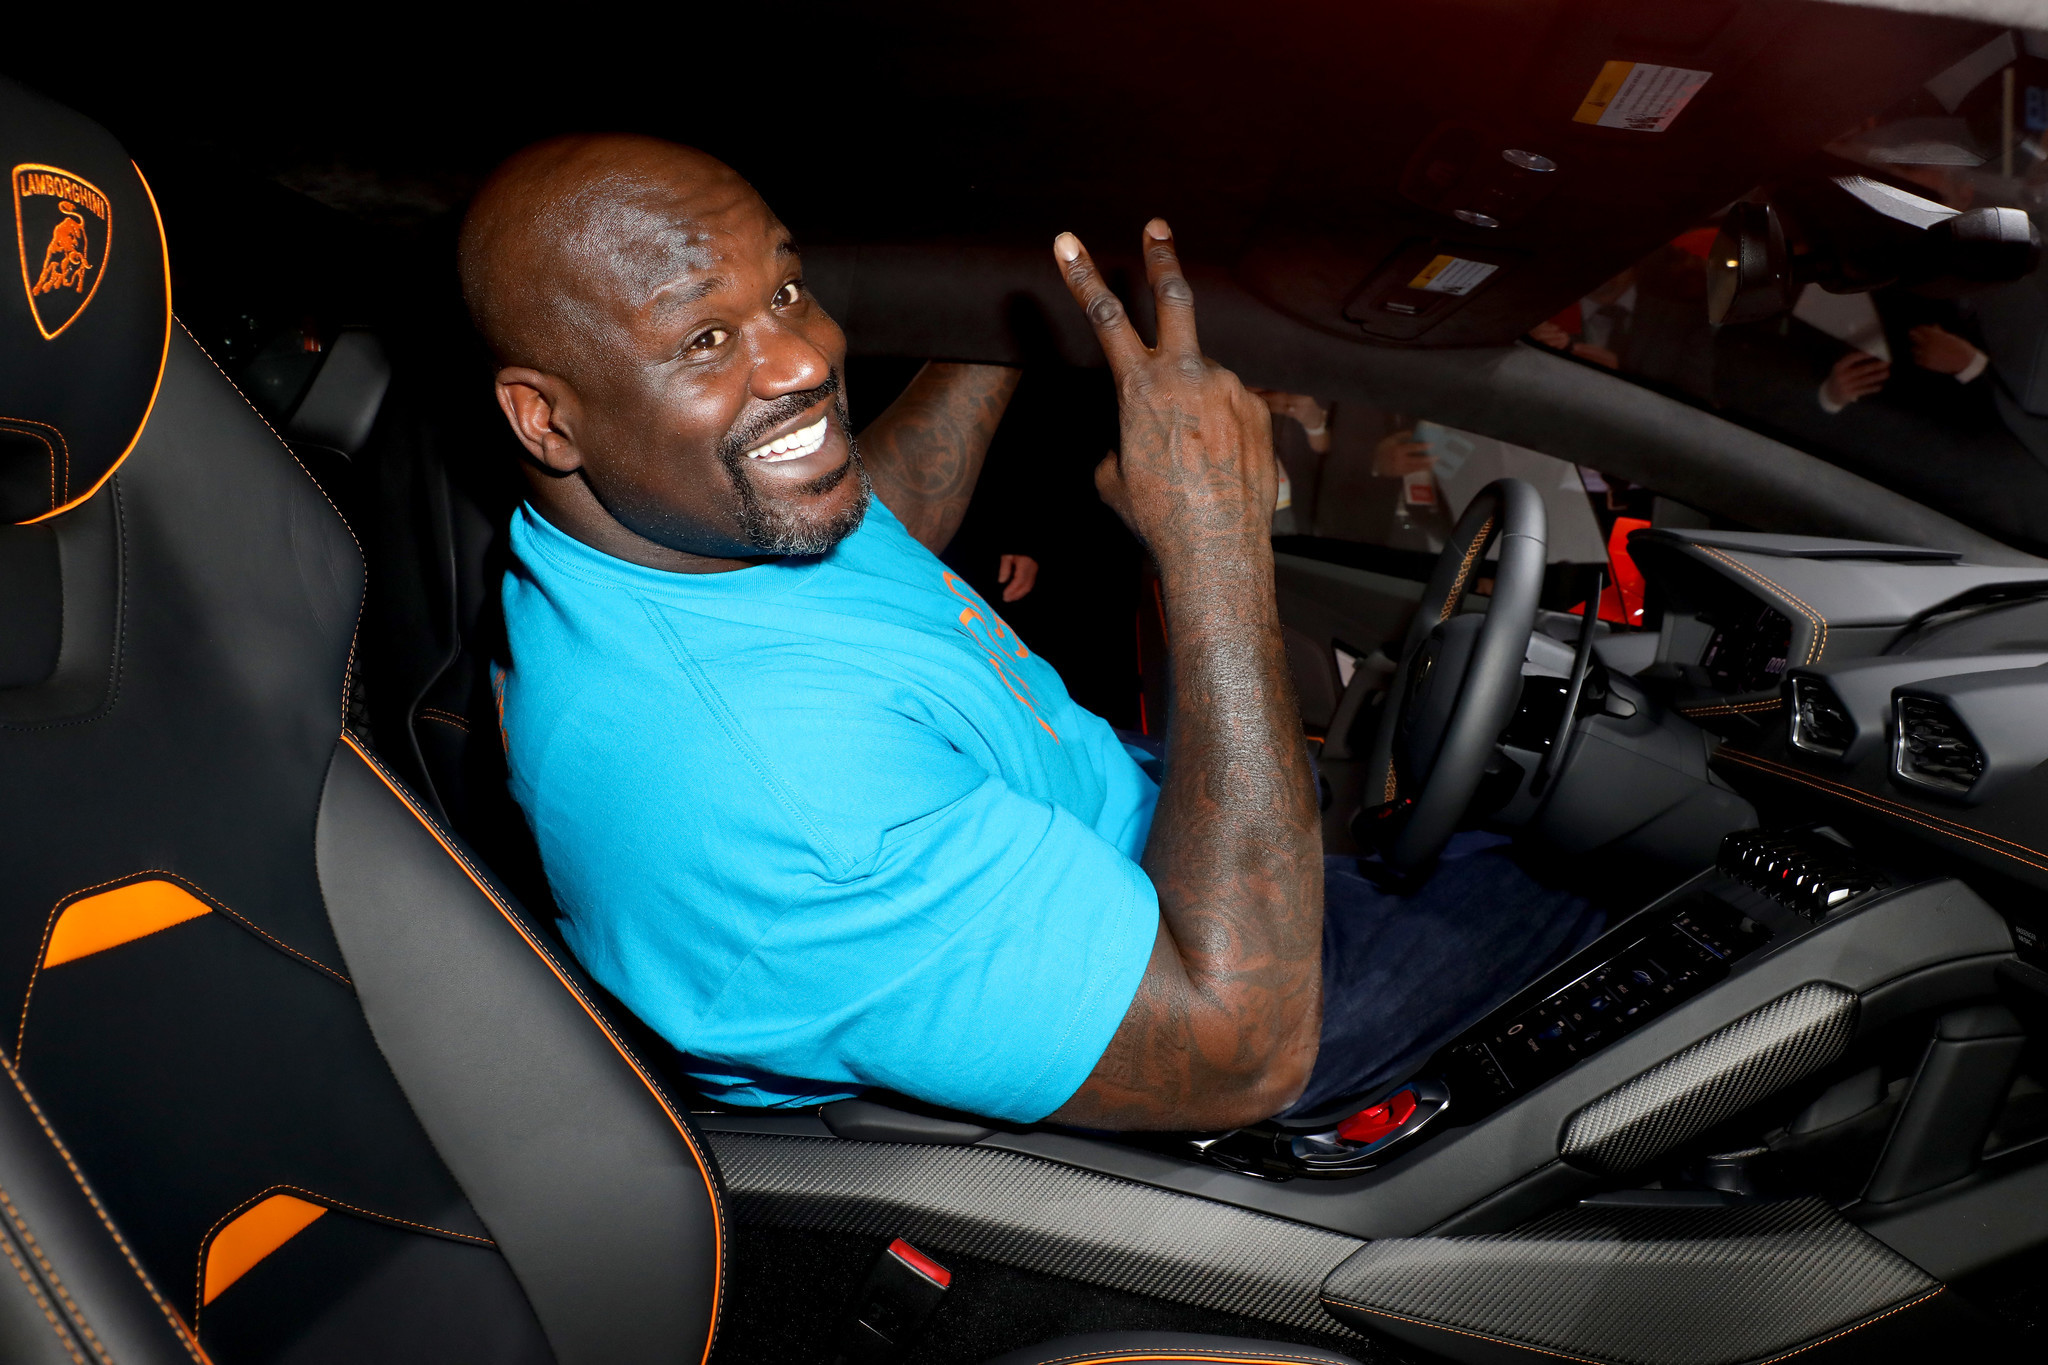 Shaquille O'Neal explains his appearance at Joe Exotic's 'Tiger King' zoo